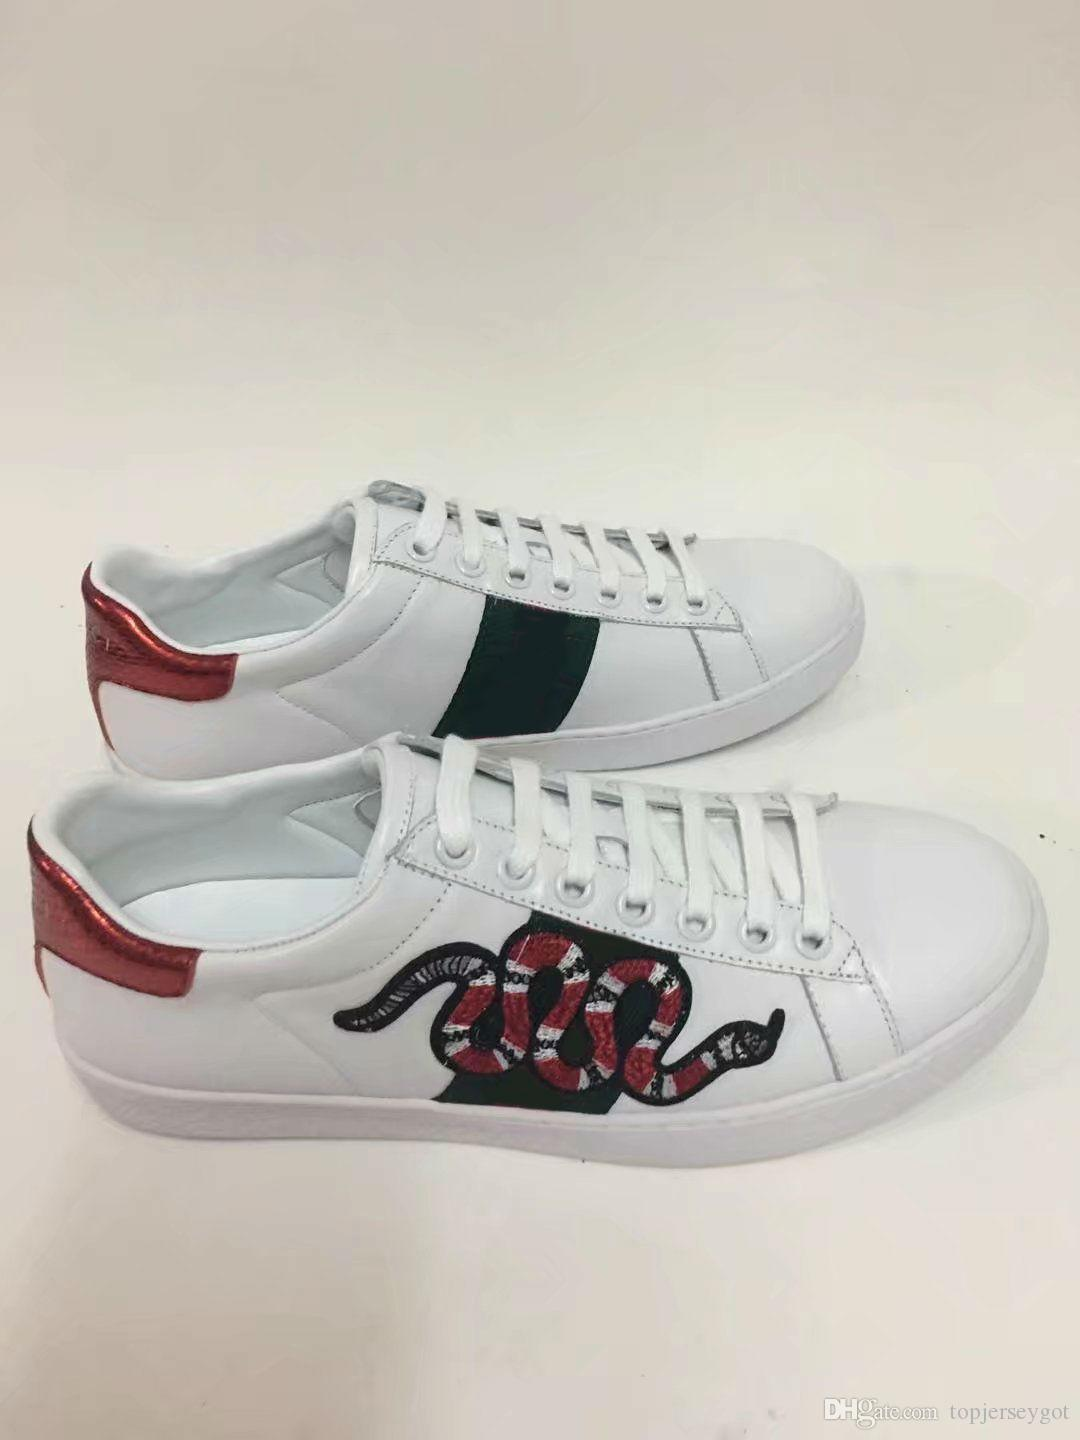 327542a6ba6 New Man Designer Sneakers Falacer Top Quality Casual Ace Shoes ...